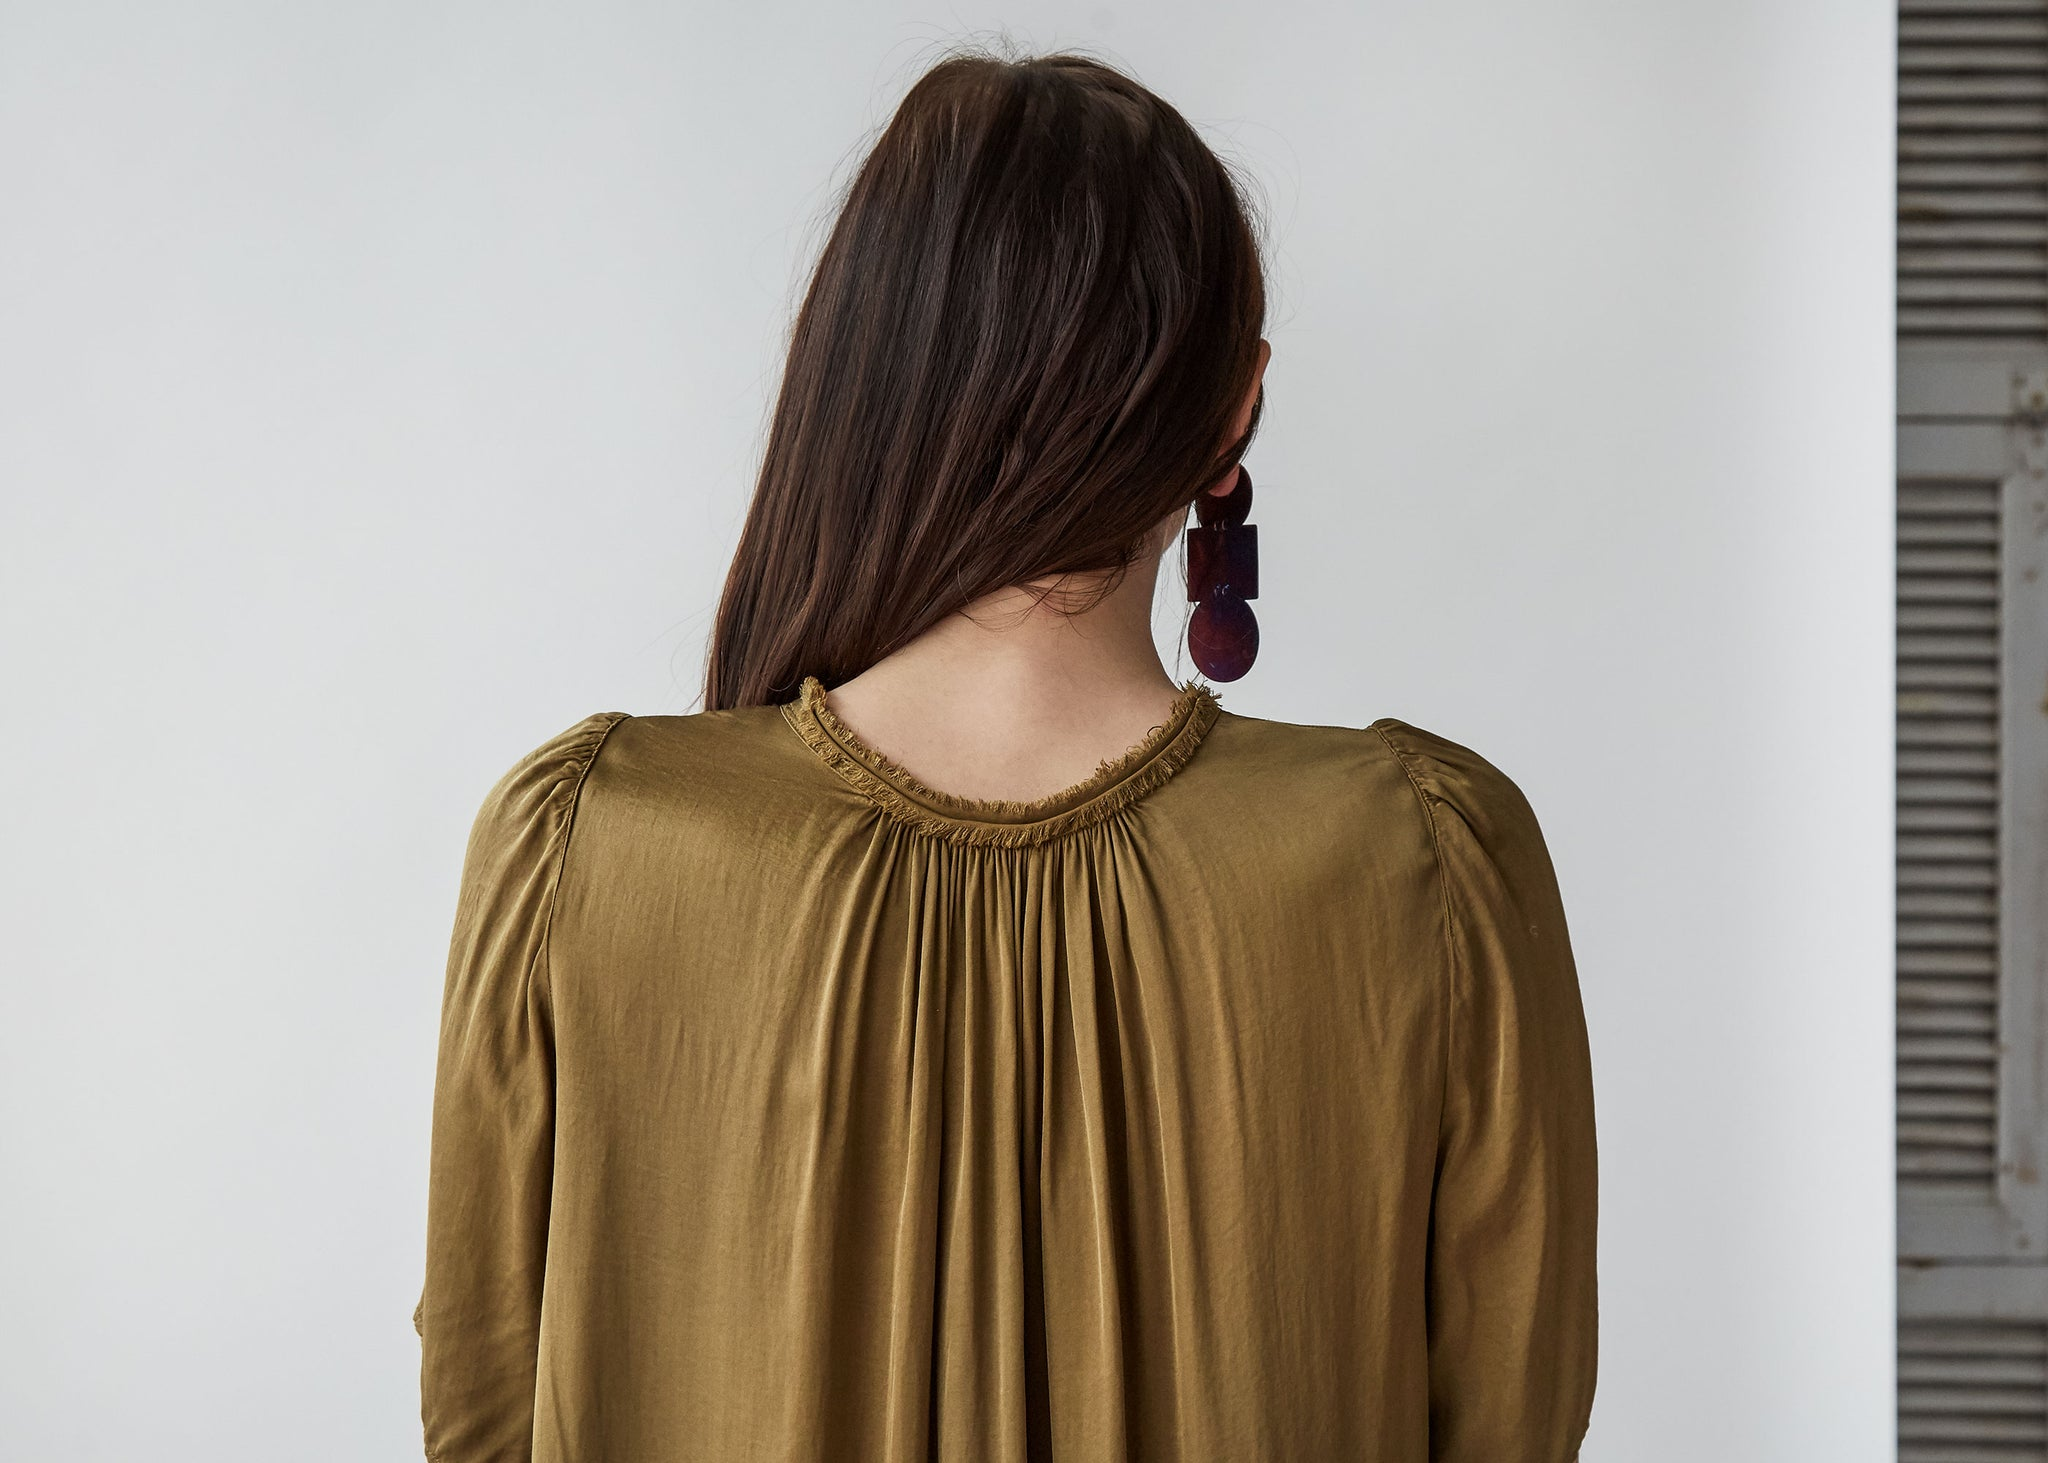 Flutter Blouse in Tobacco - SOLD OUT